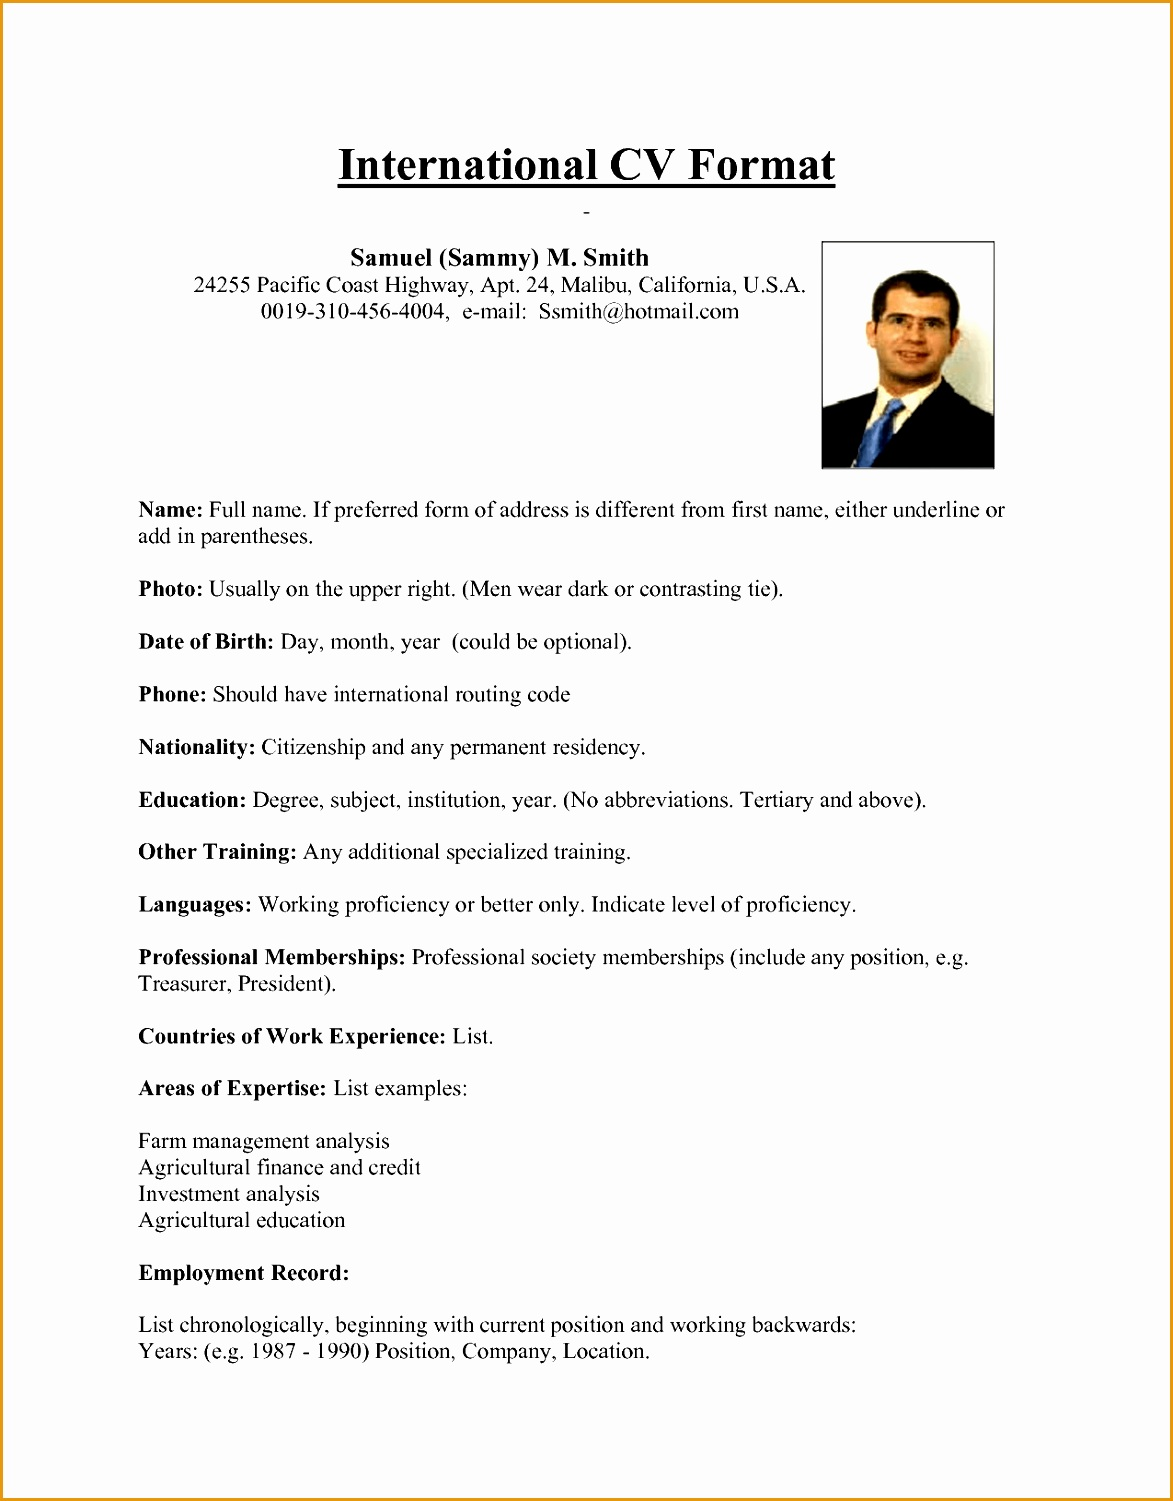 best resume format usa international cv from samuel15011173